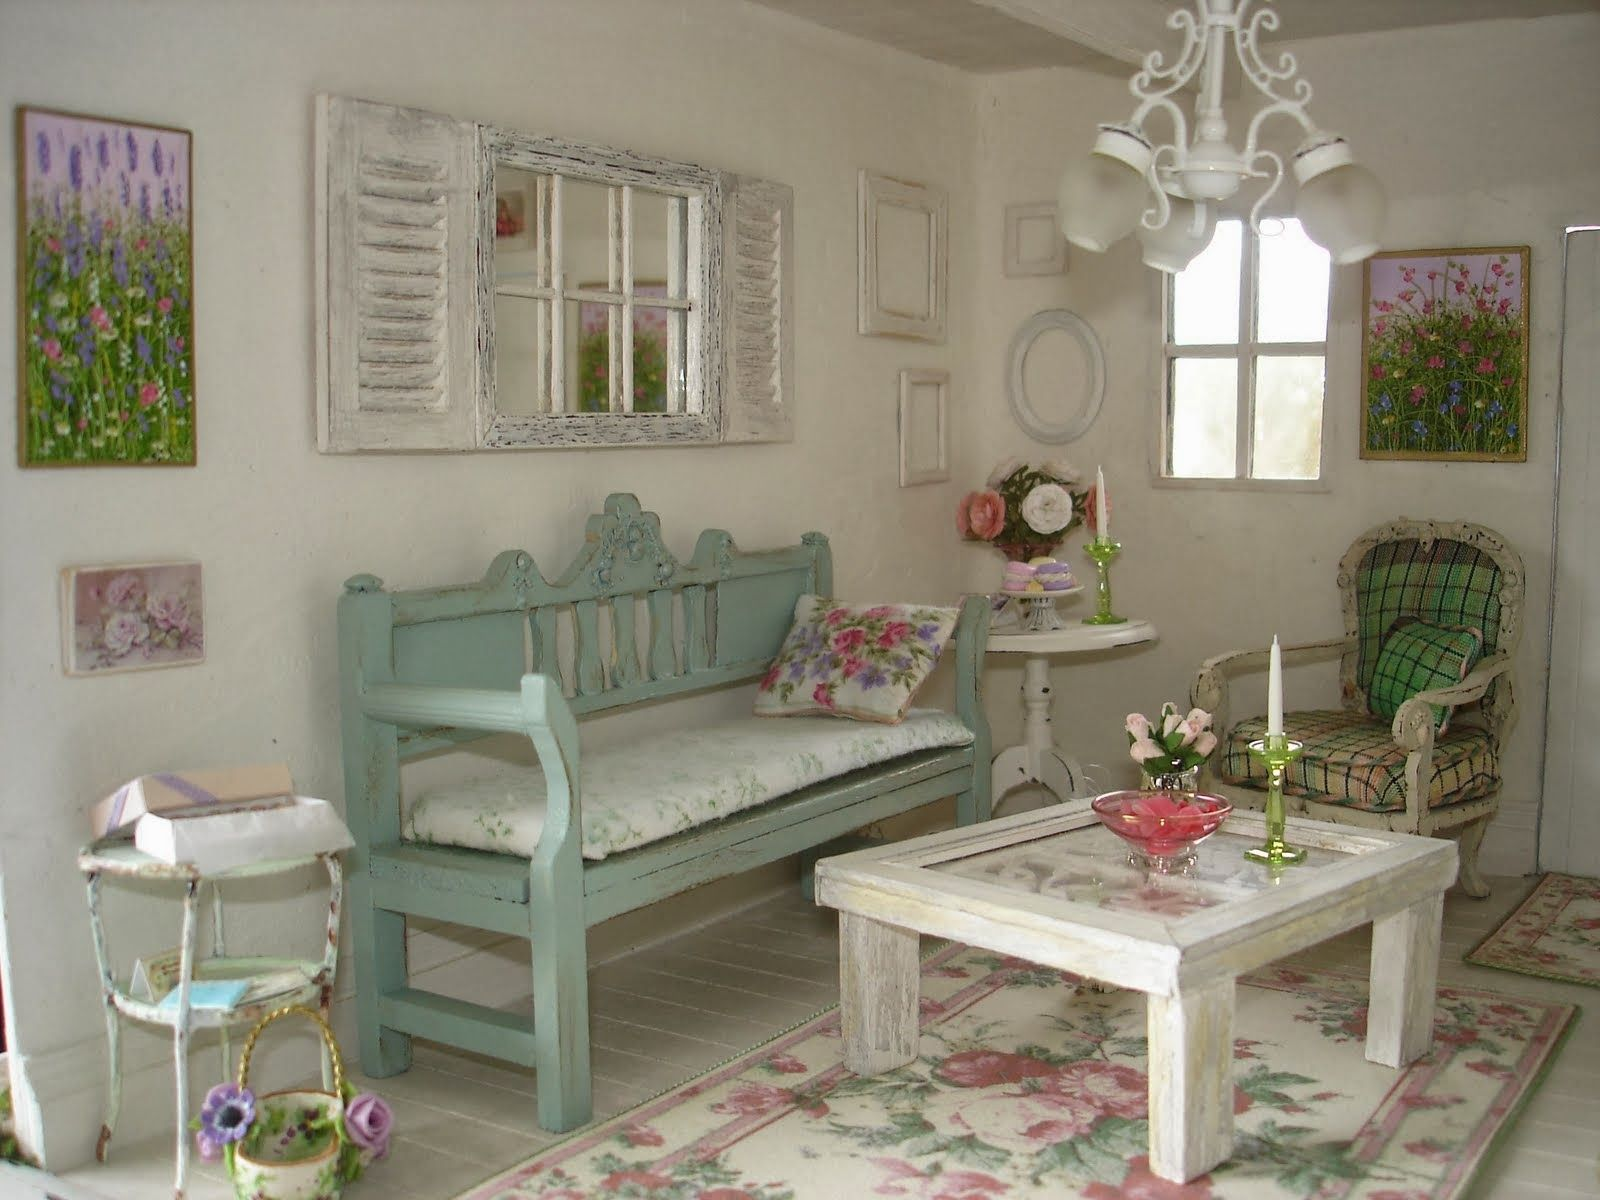 Shabby Chic Decorating Guest Post Shabby Chic Home Decor Shabby Shabby Chic Interiors